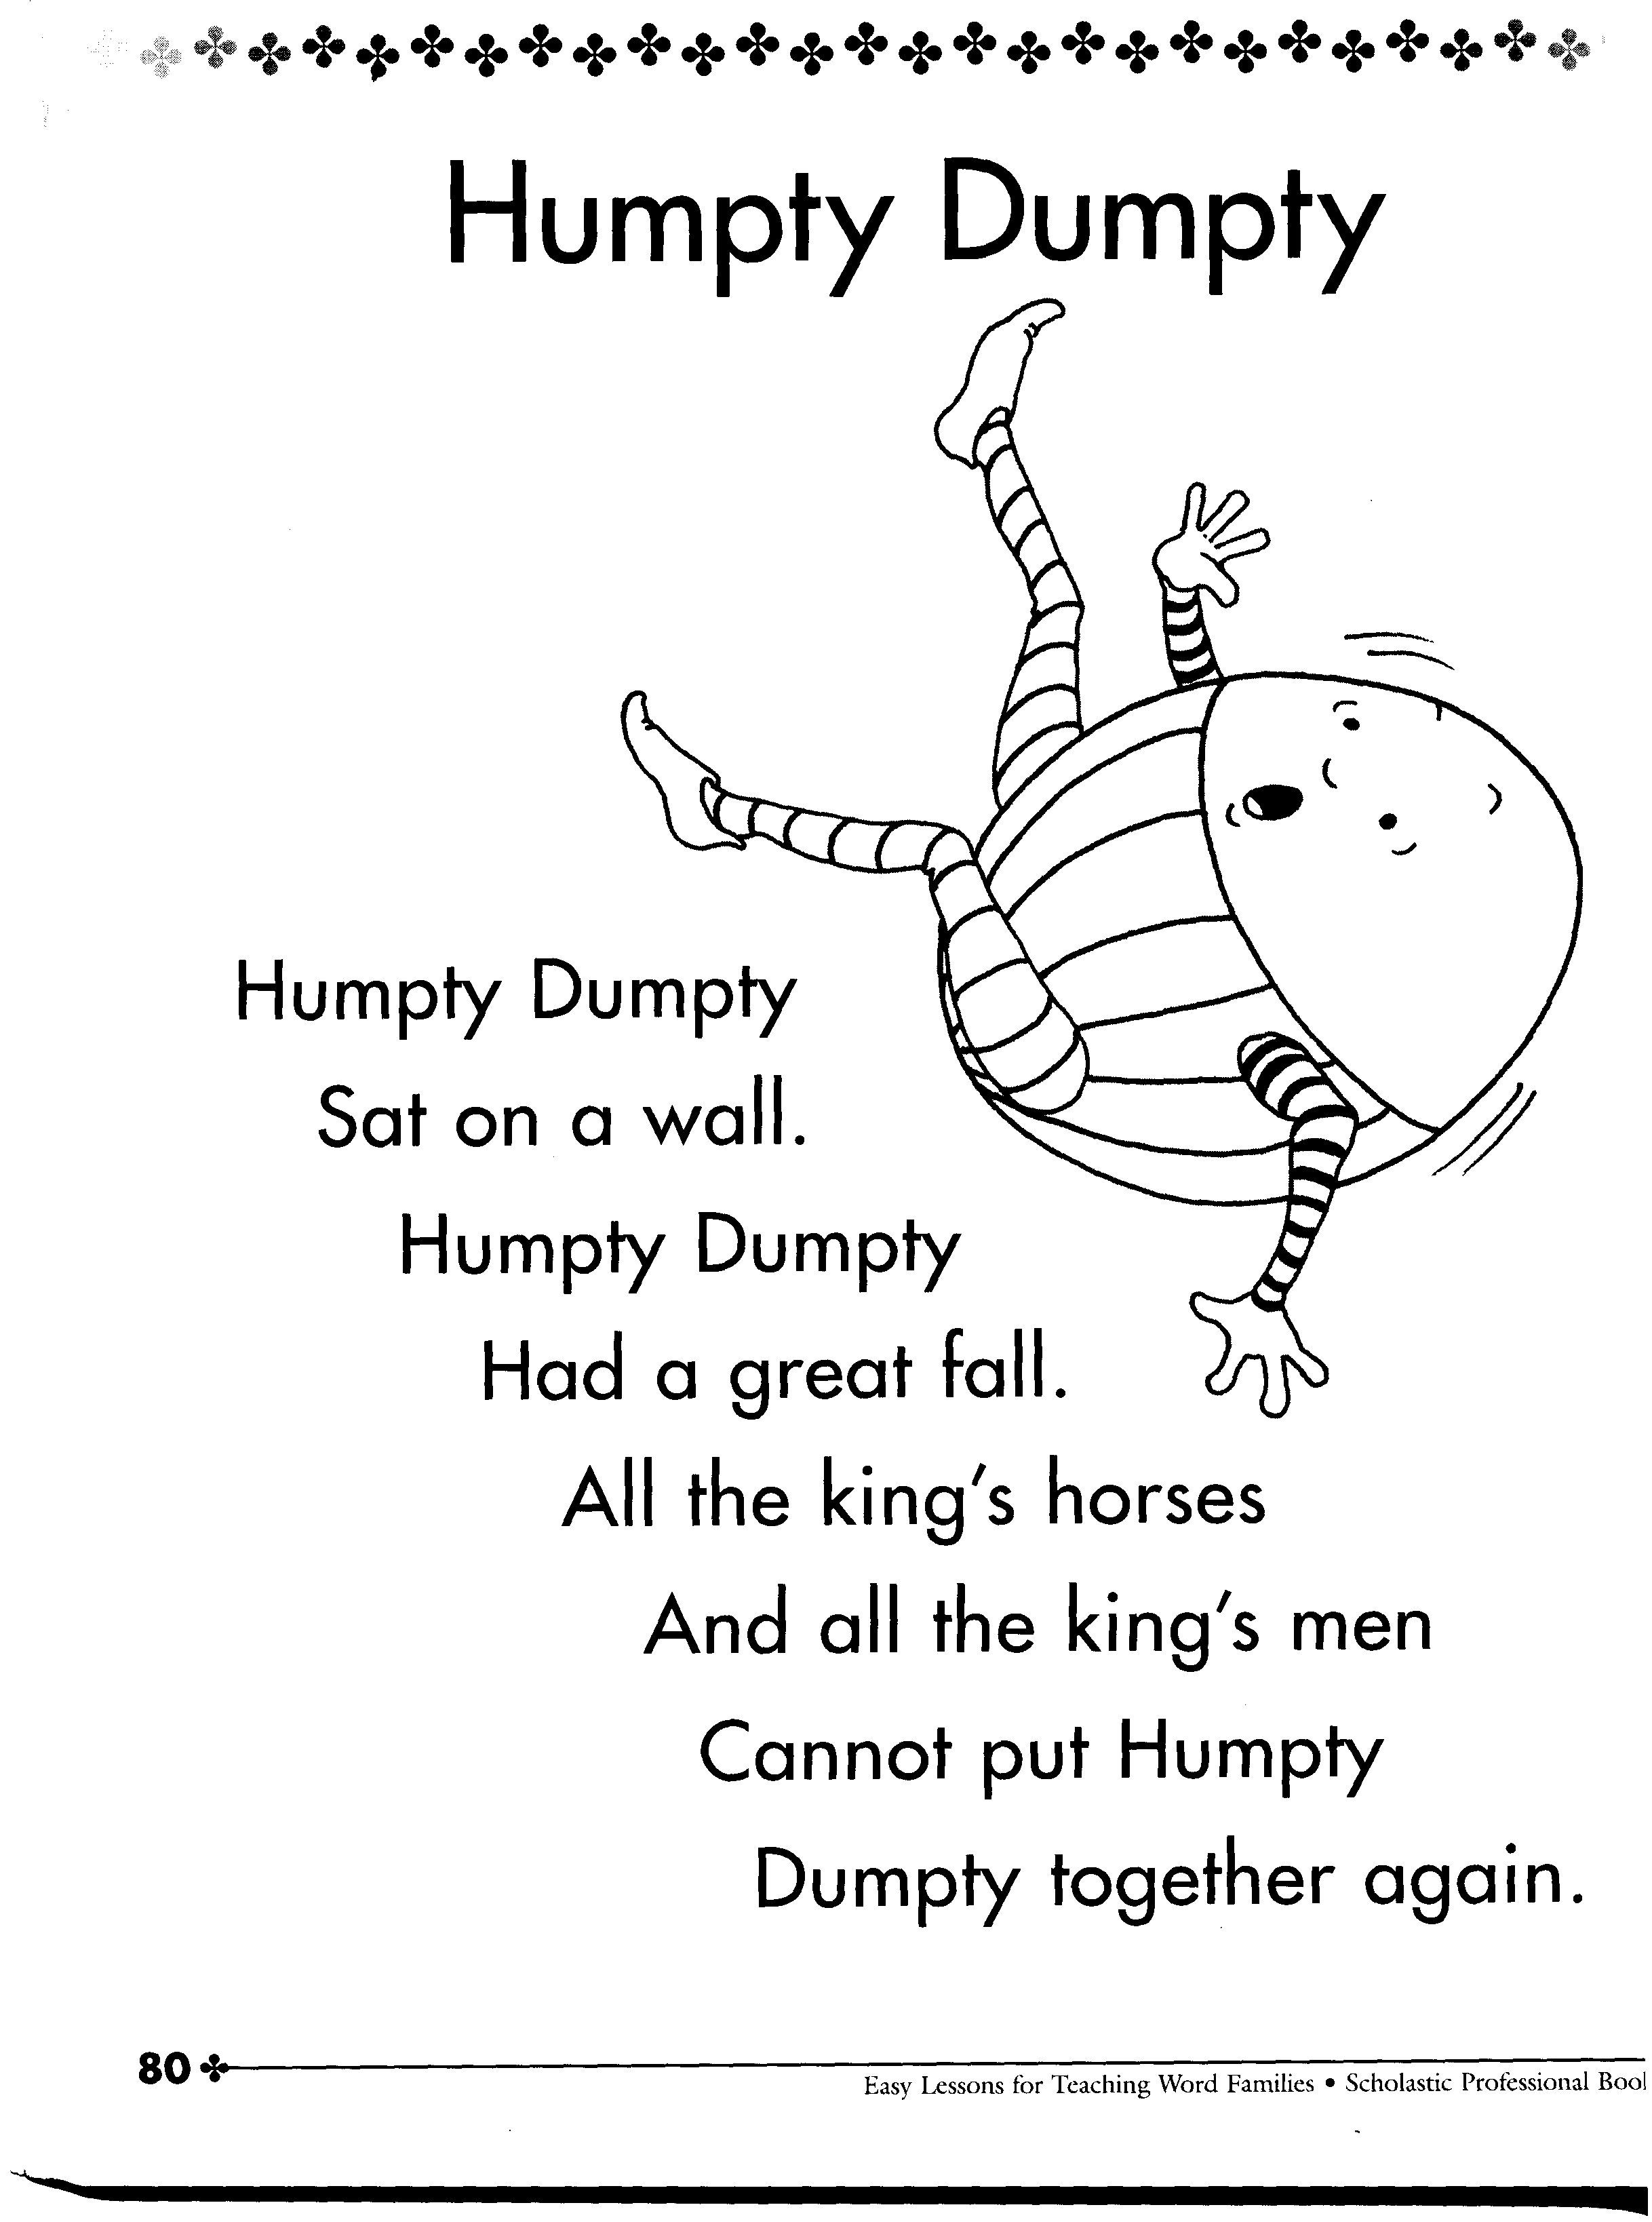 It Never Said He Was An Egg Humpty Dumpty Nursery Rhyme